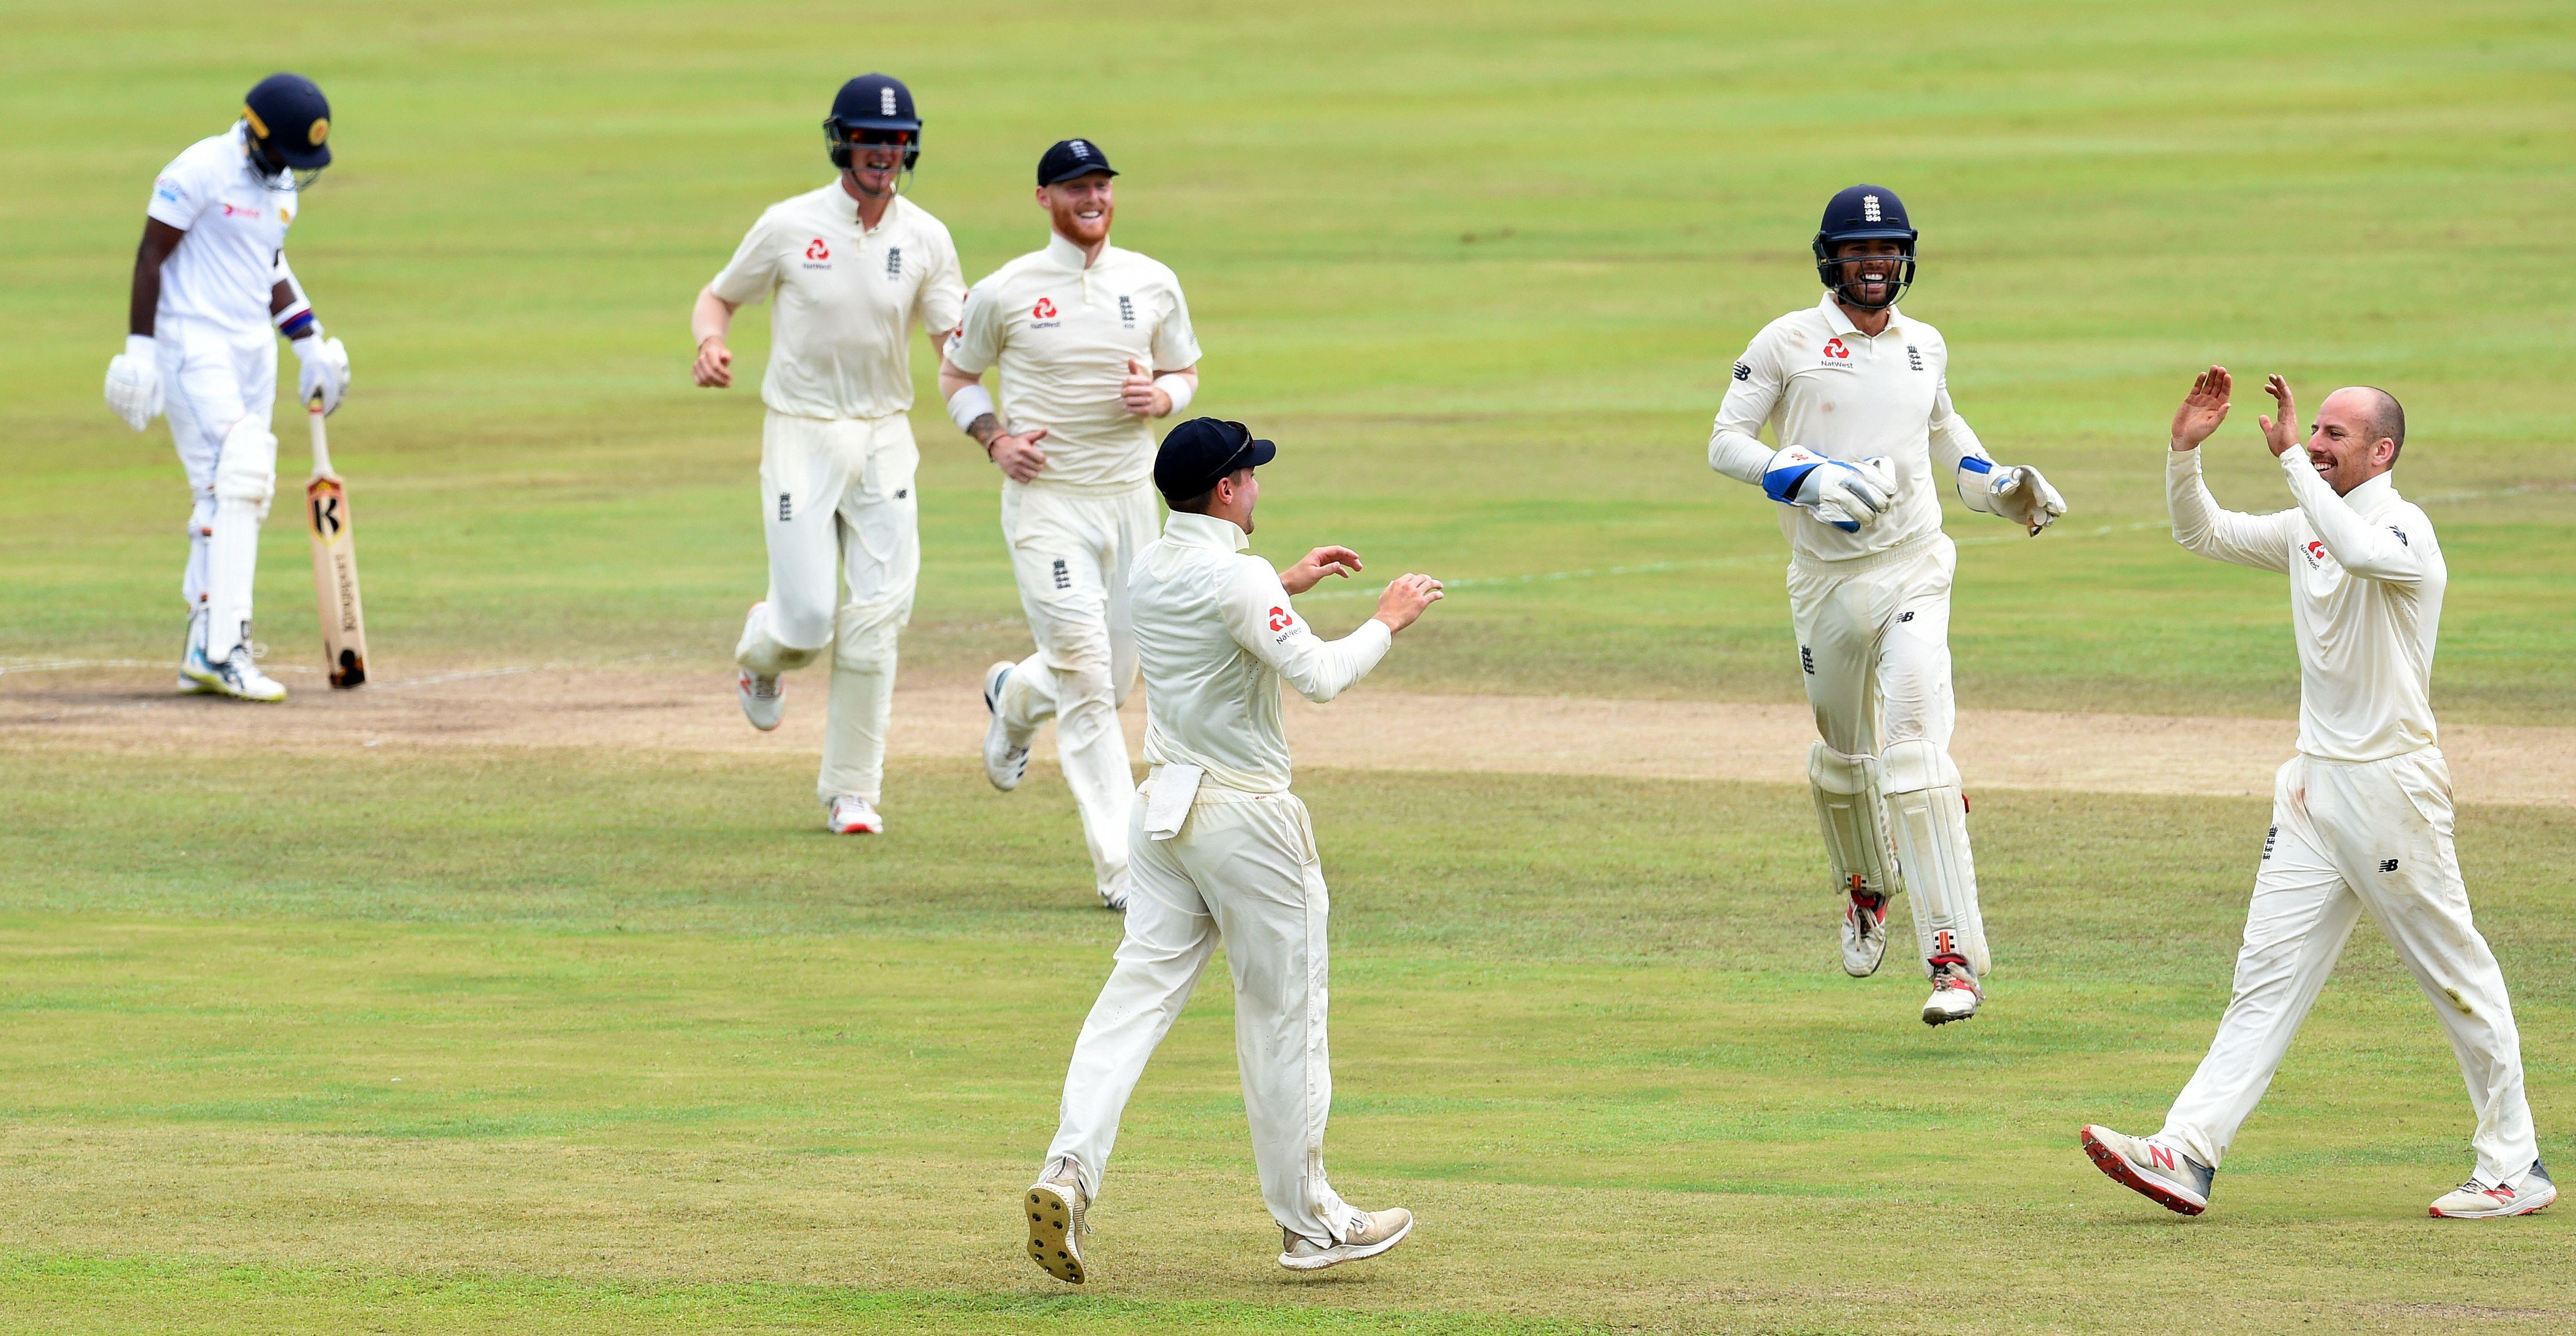 England are almost certain to clinch the match and the whitewash tomorrow